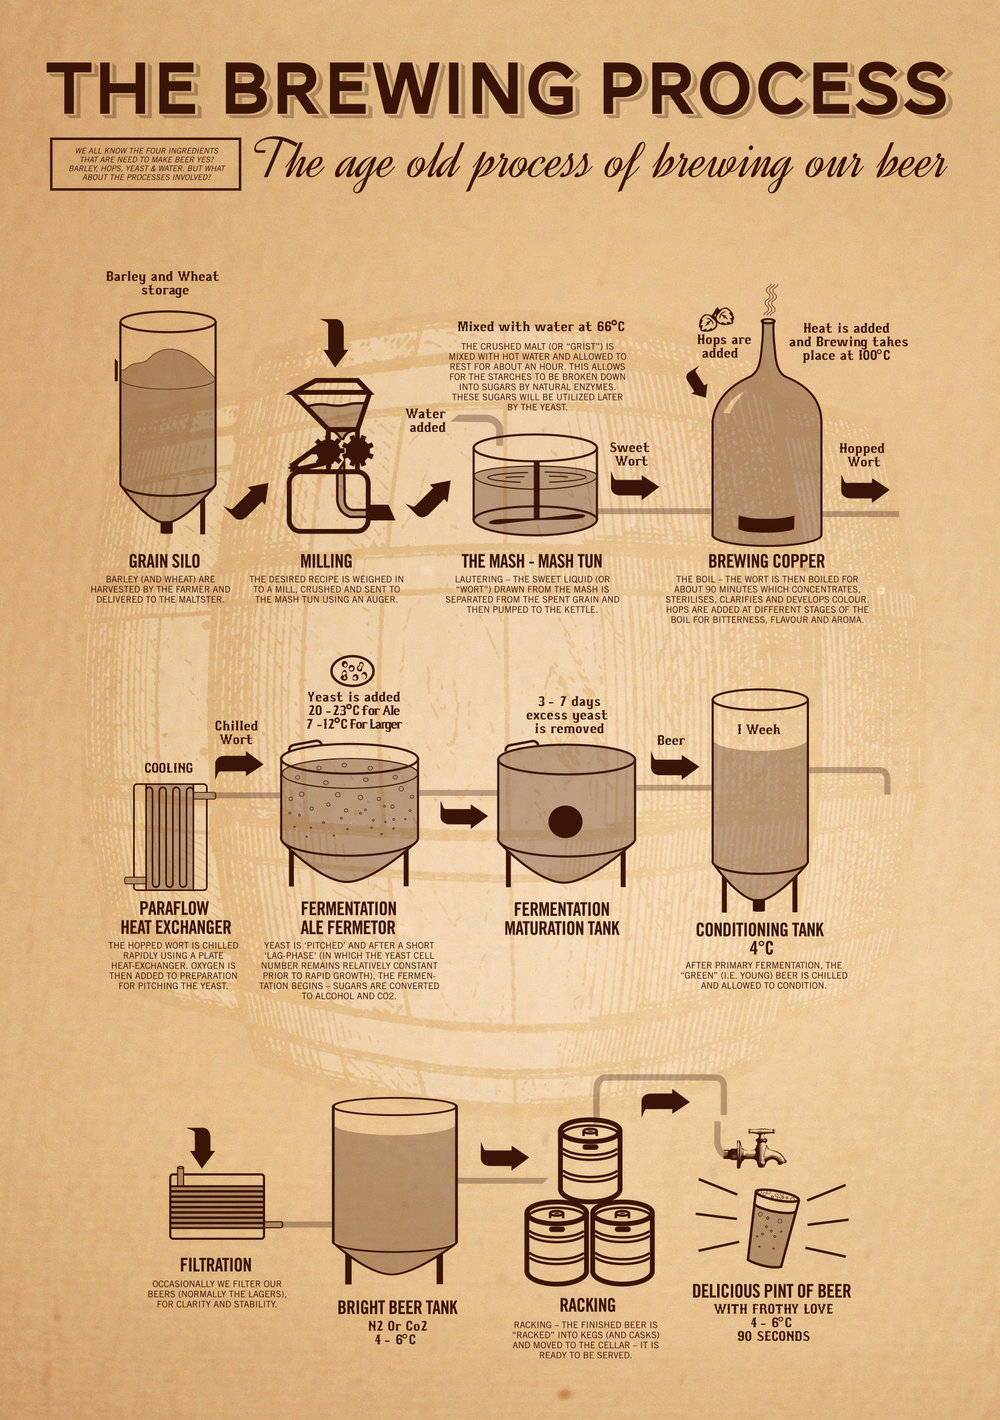 Brewing-Process-2018-2.jpg